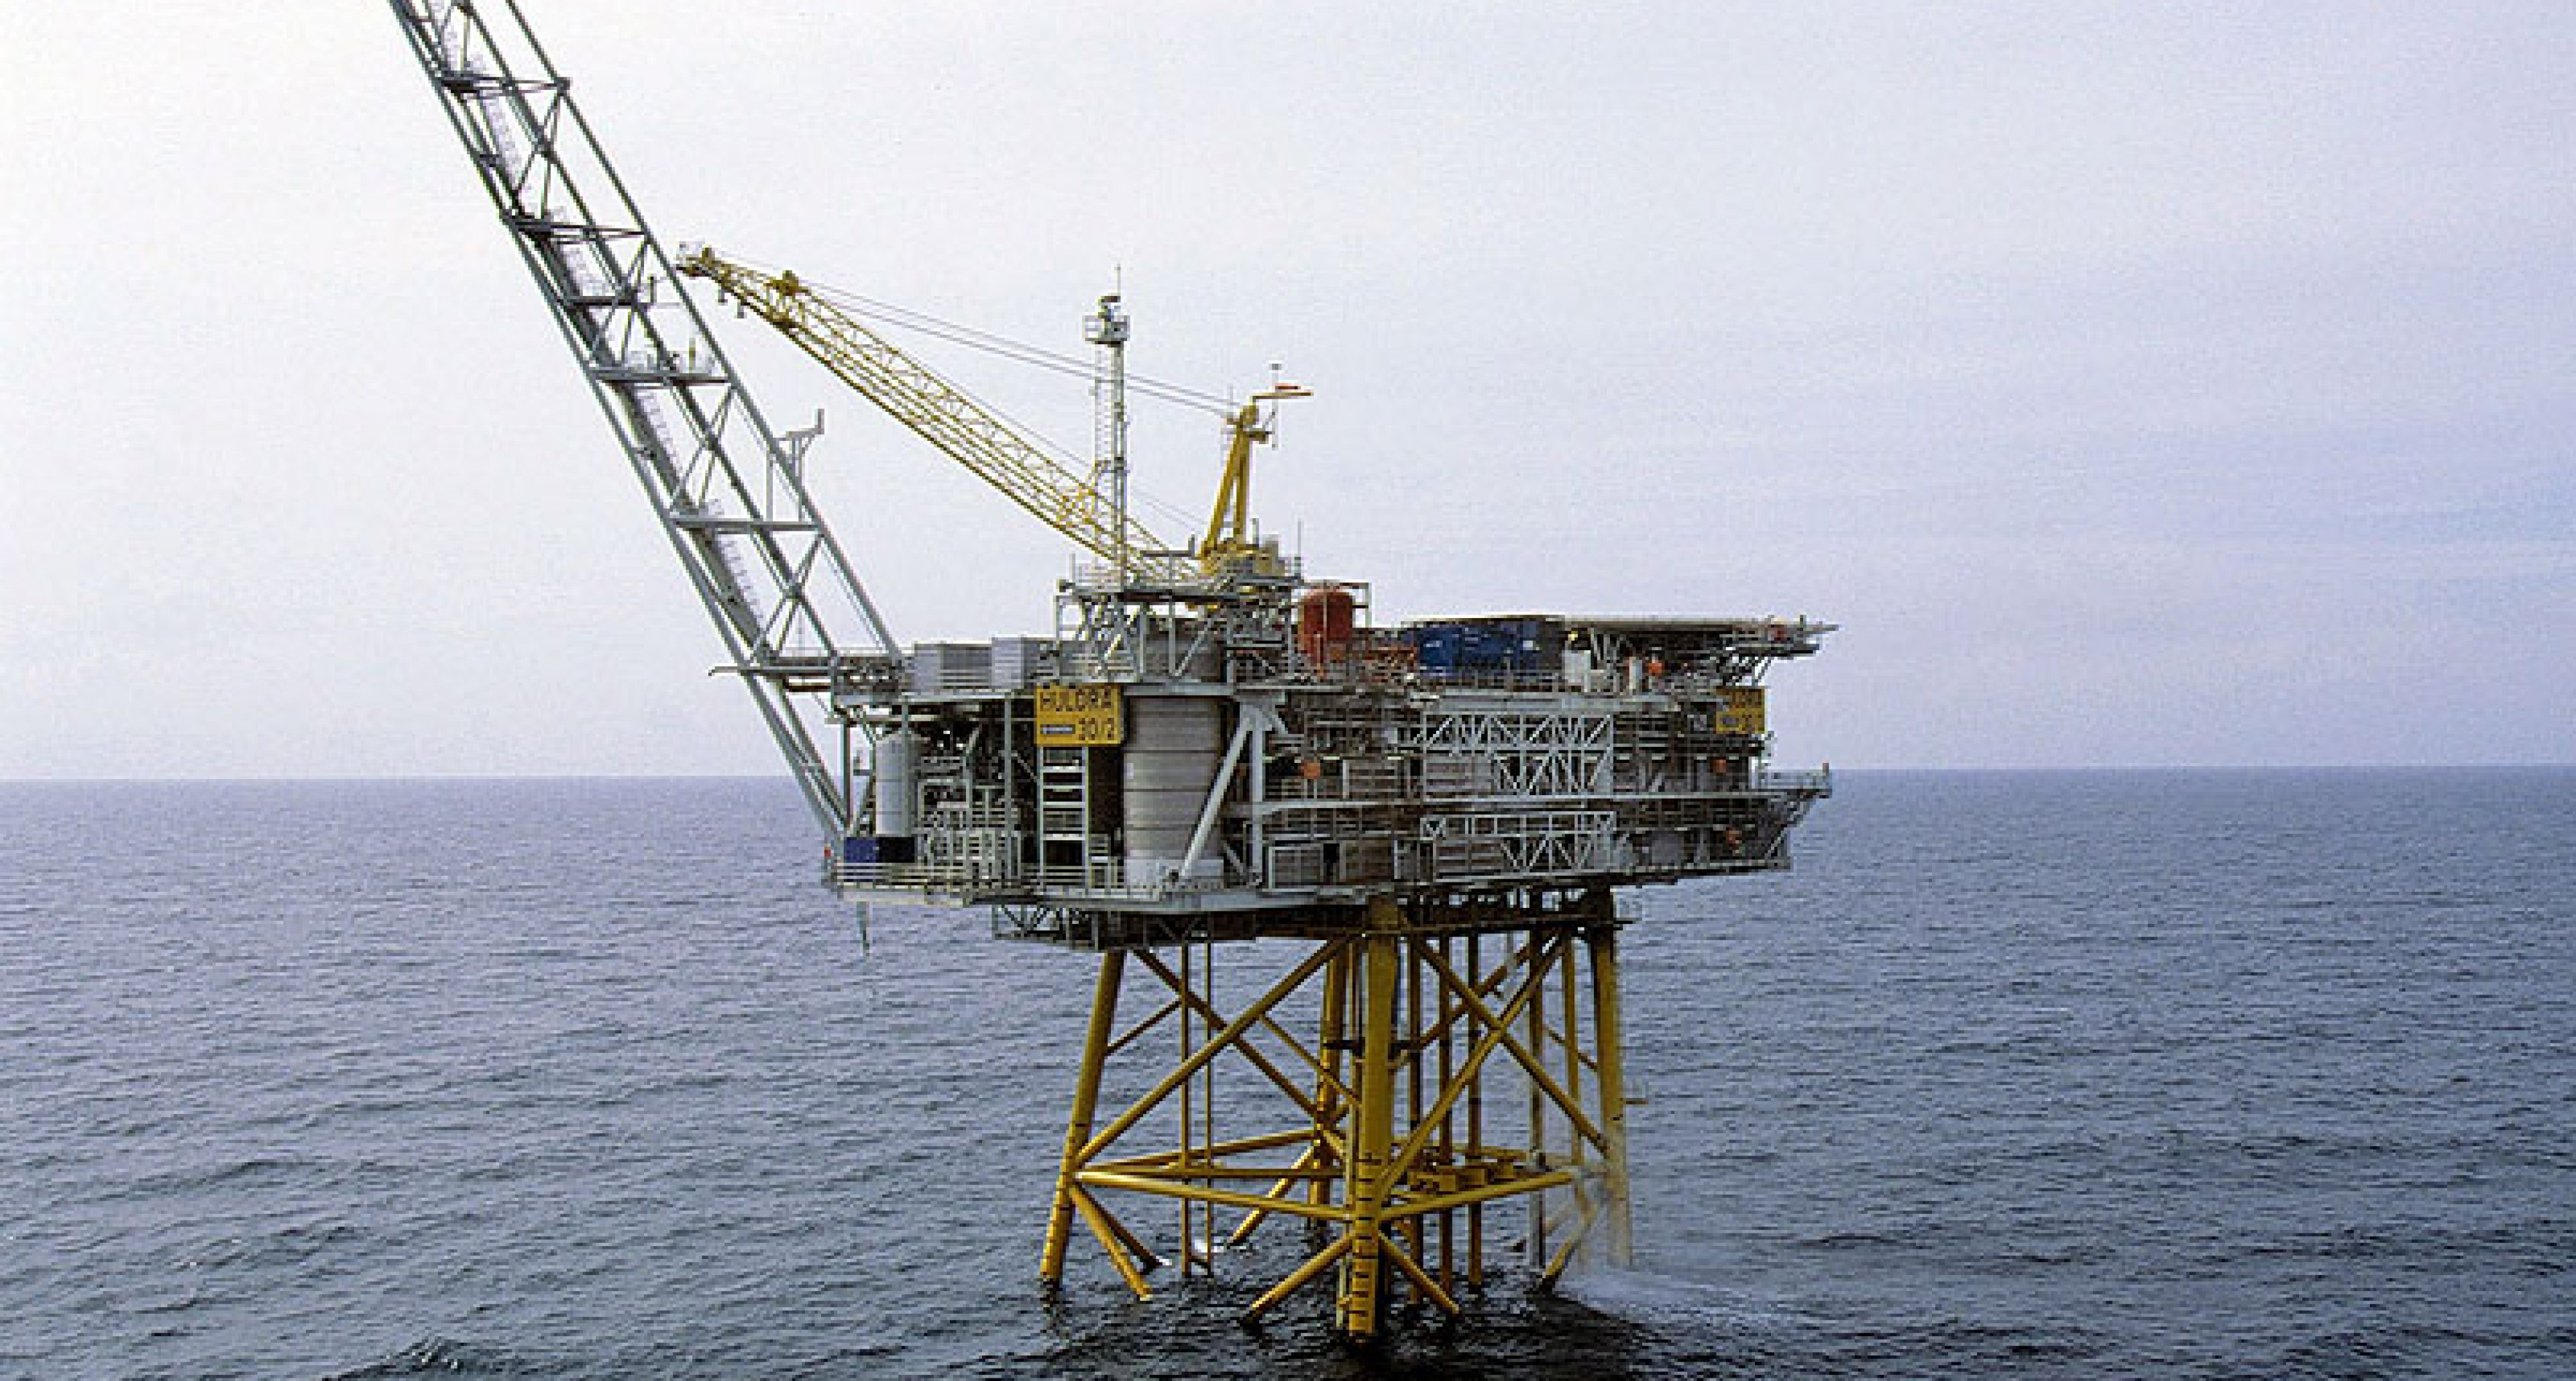 Oil Rig for sale: 20 rooms and sea view, but no garage